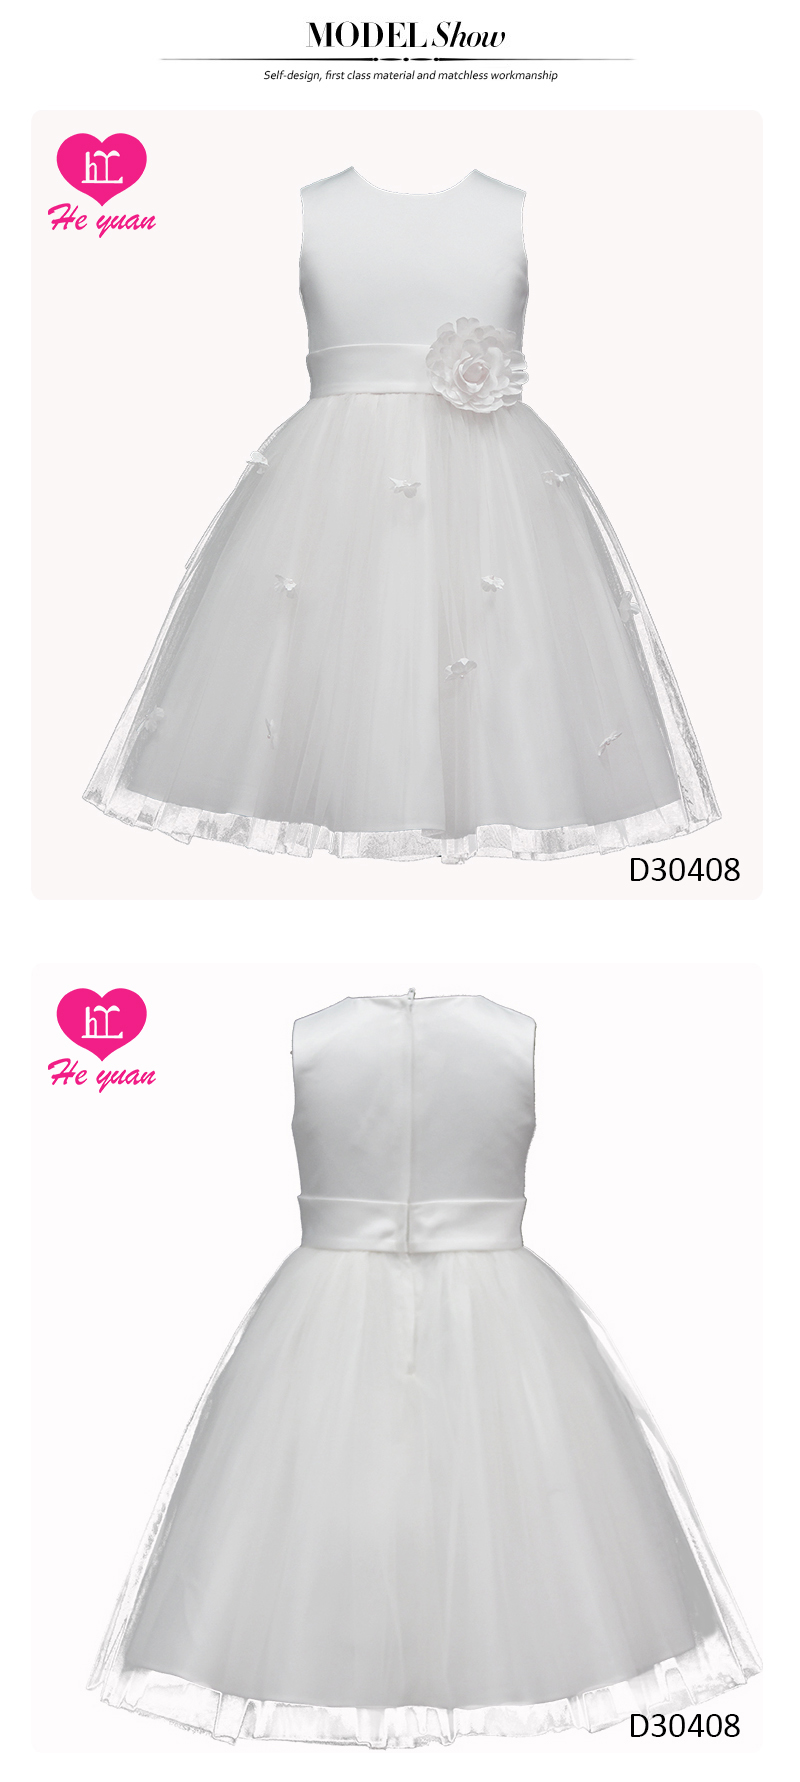 D30408 Party Princess Dress Pageant Wedding Bridesmaid Flower Girl Dress